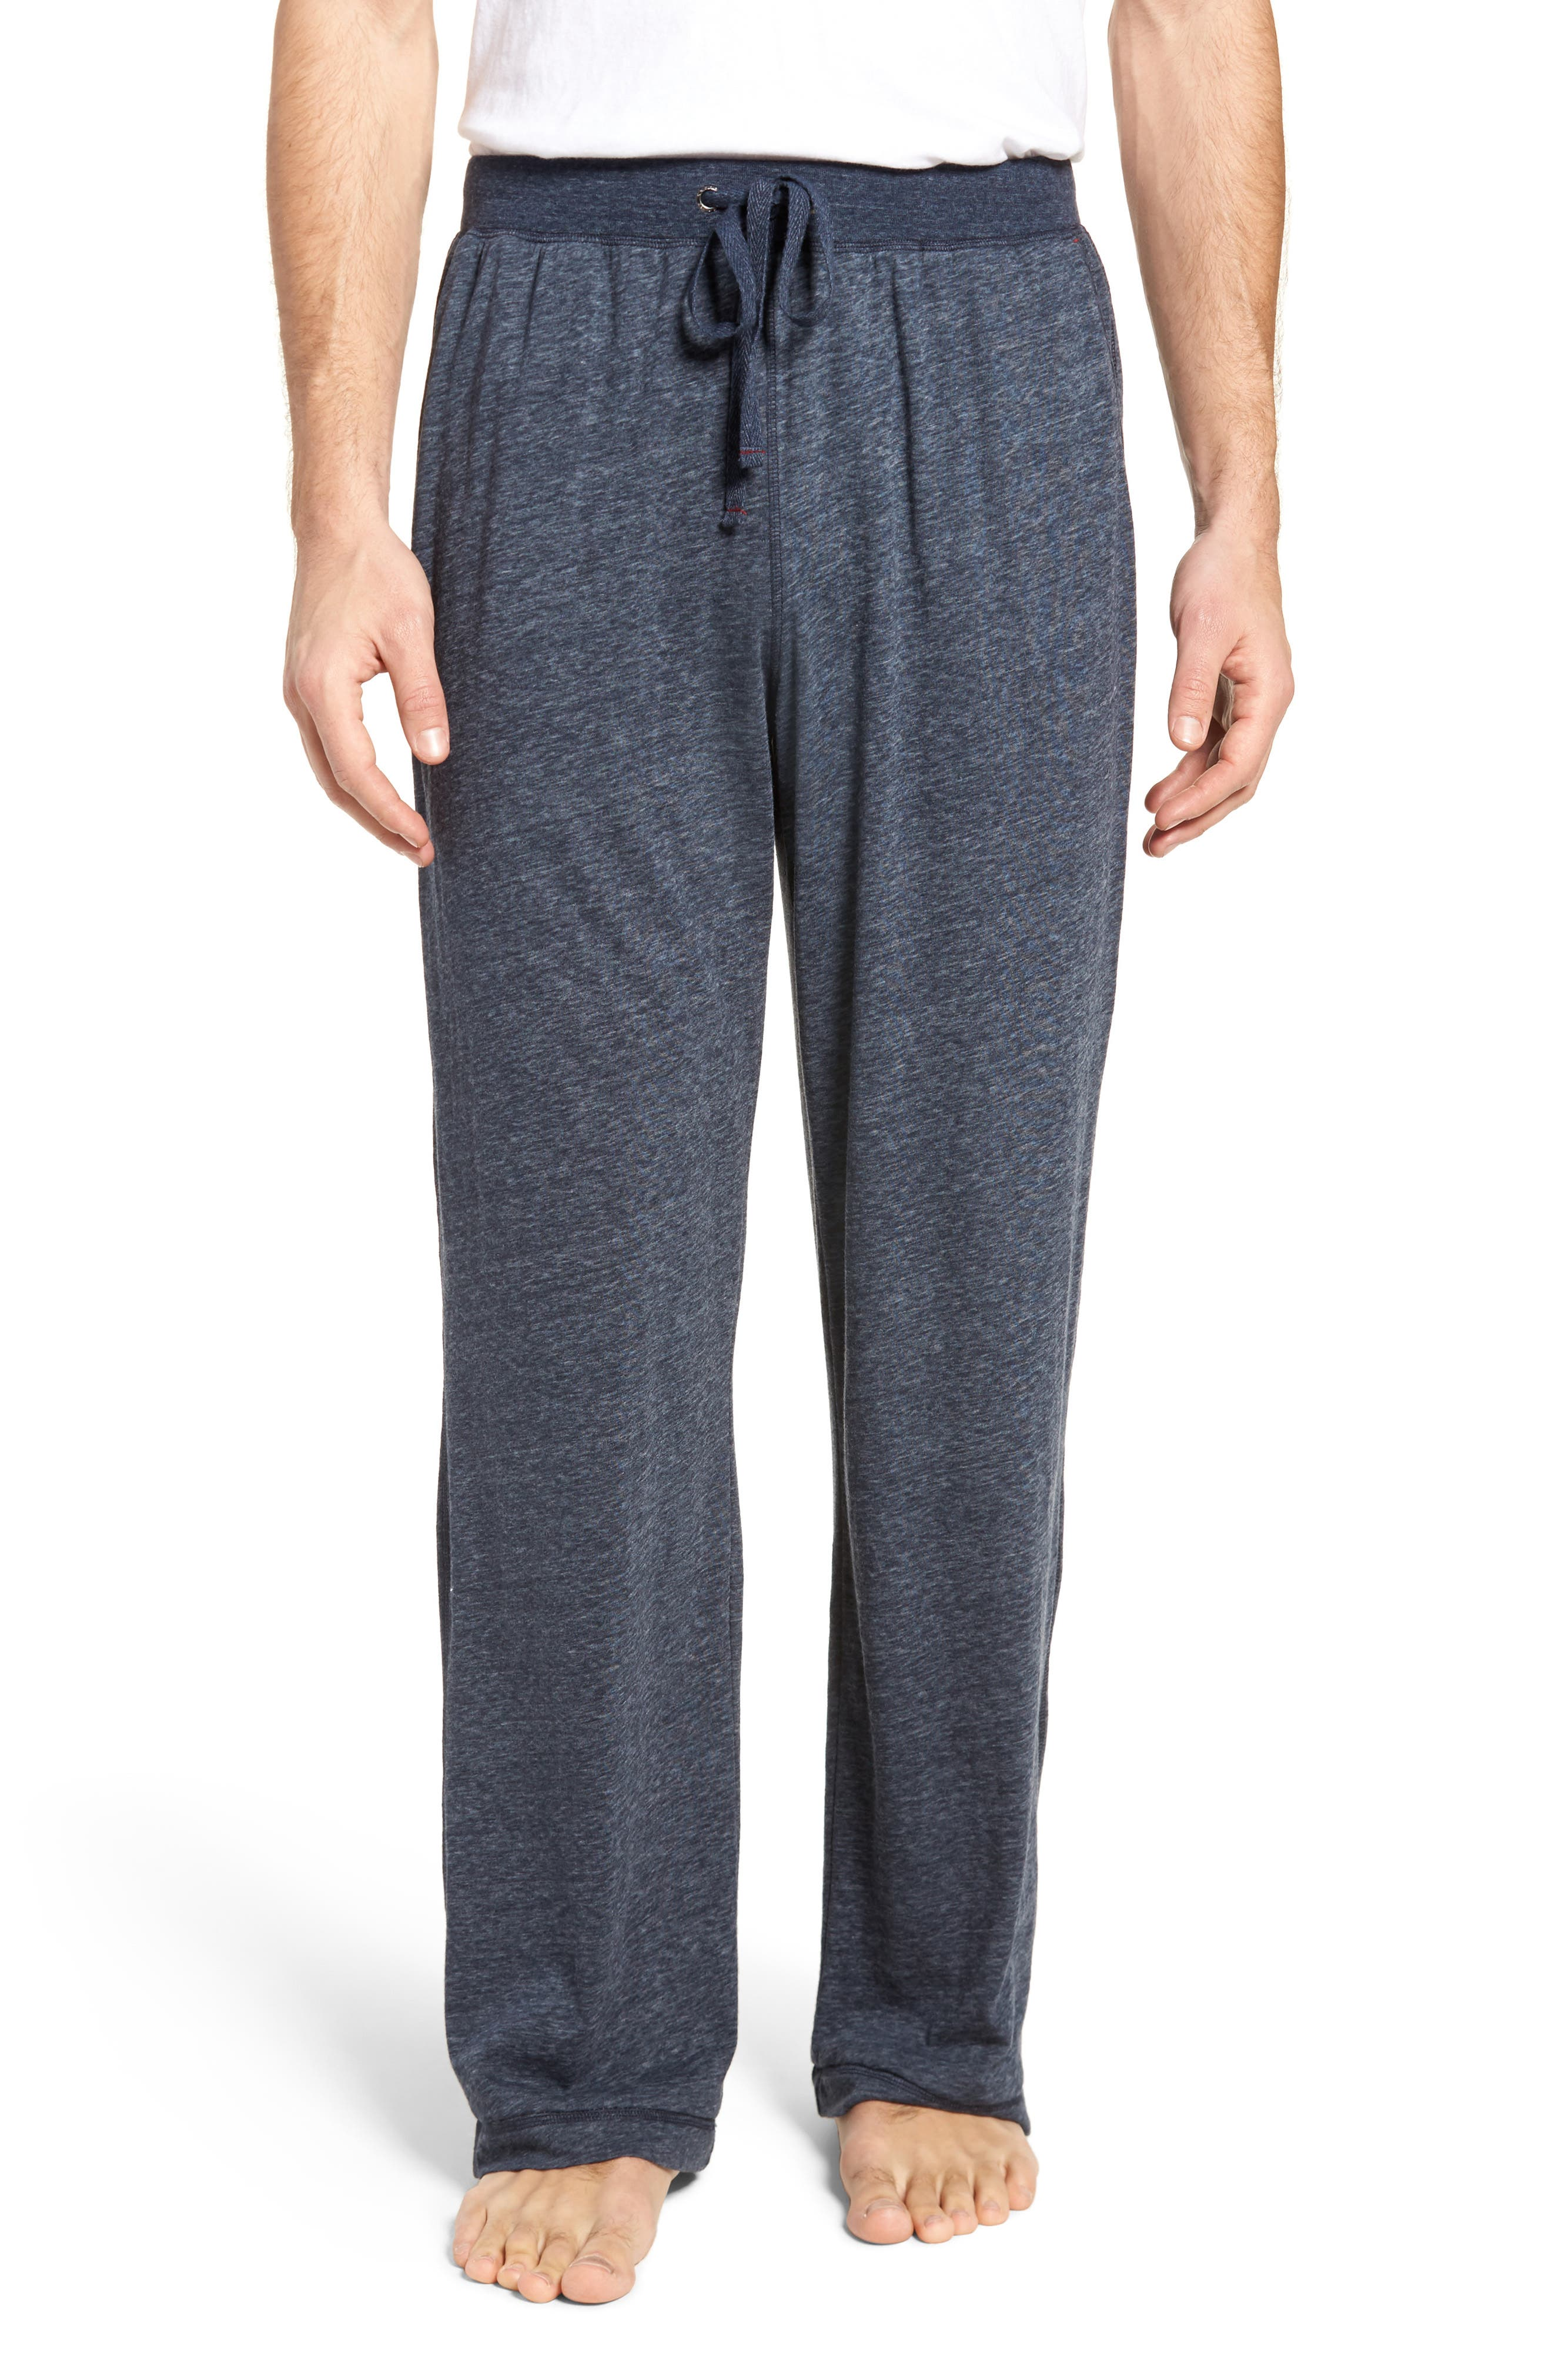 Recycled Cotton Blend Lounge Pants,                         Main,                         color, Navy Heather